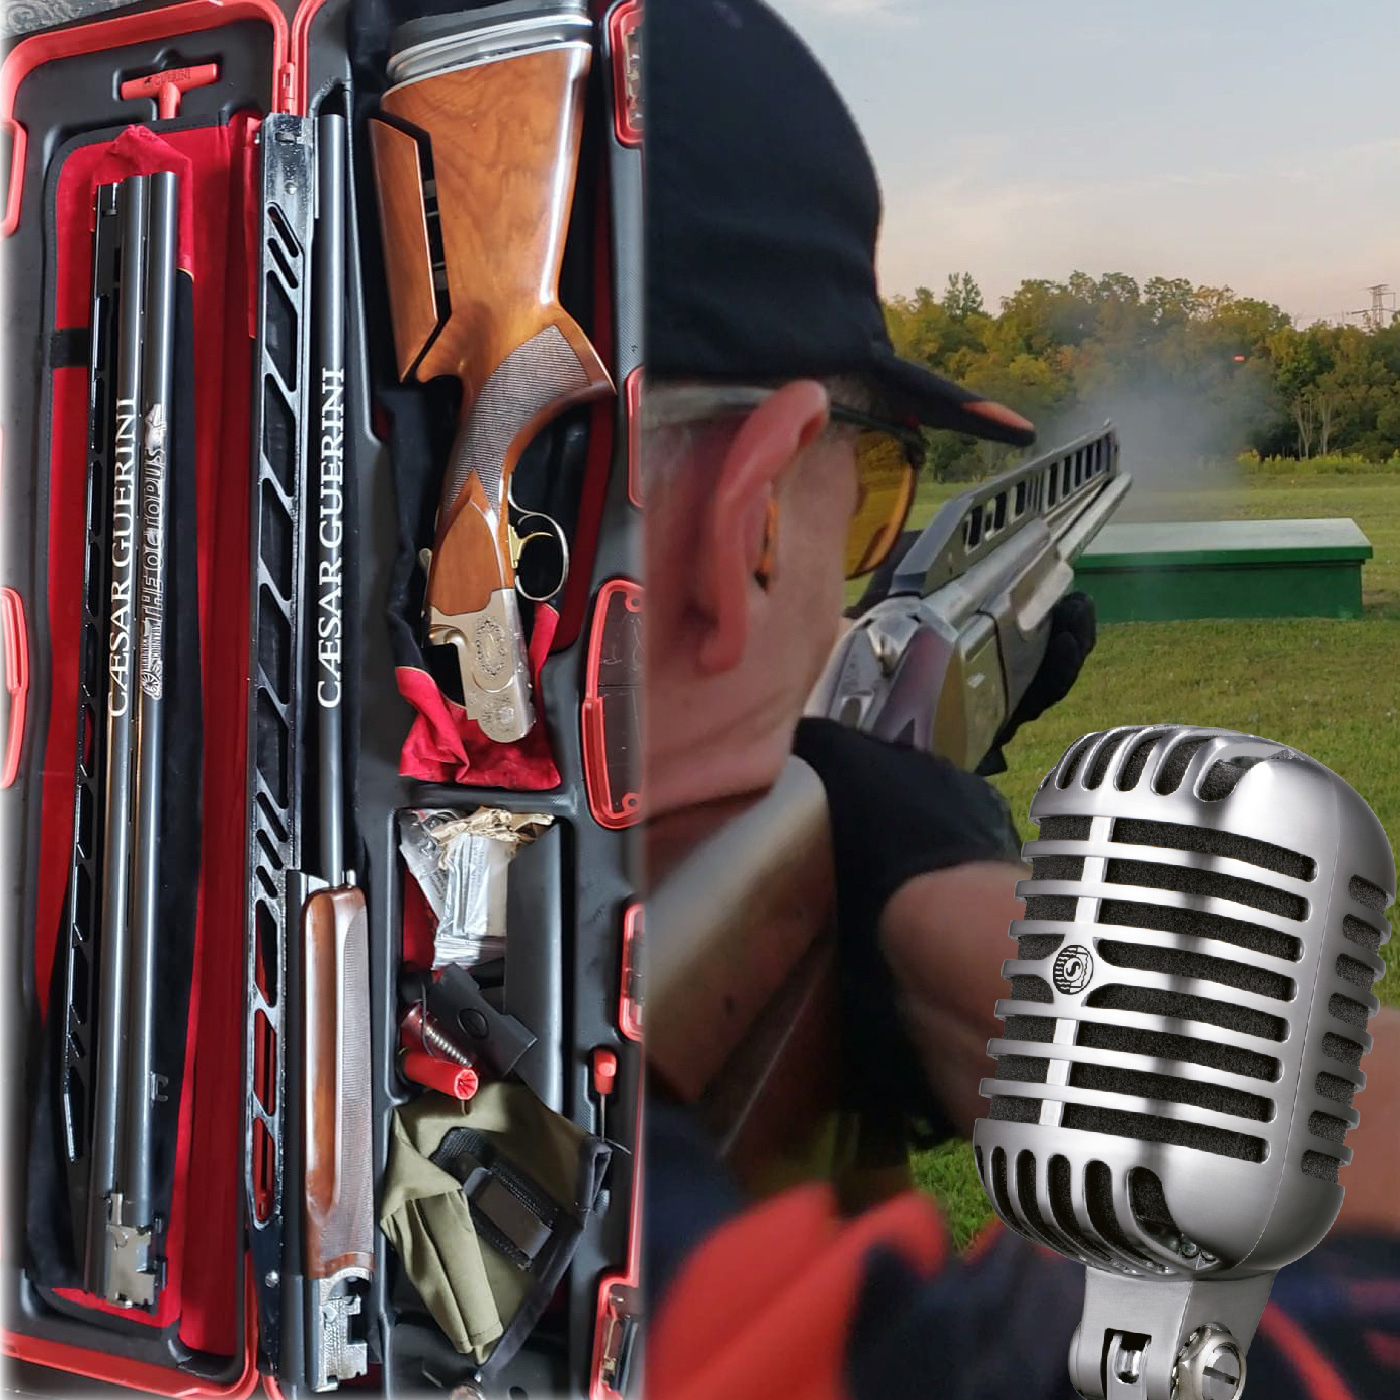 Redneck Country Podcast - Episode 26 - WTFlip kind of Shotgun is that?!?